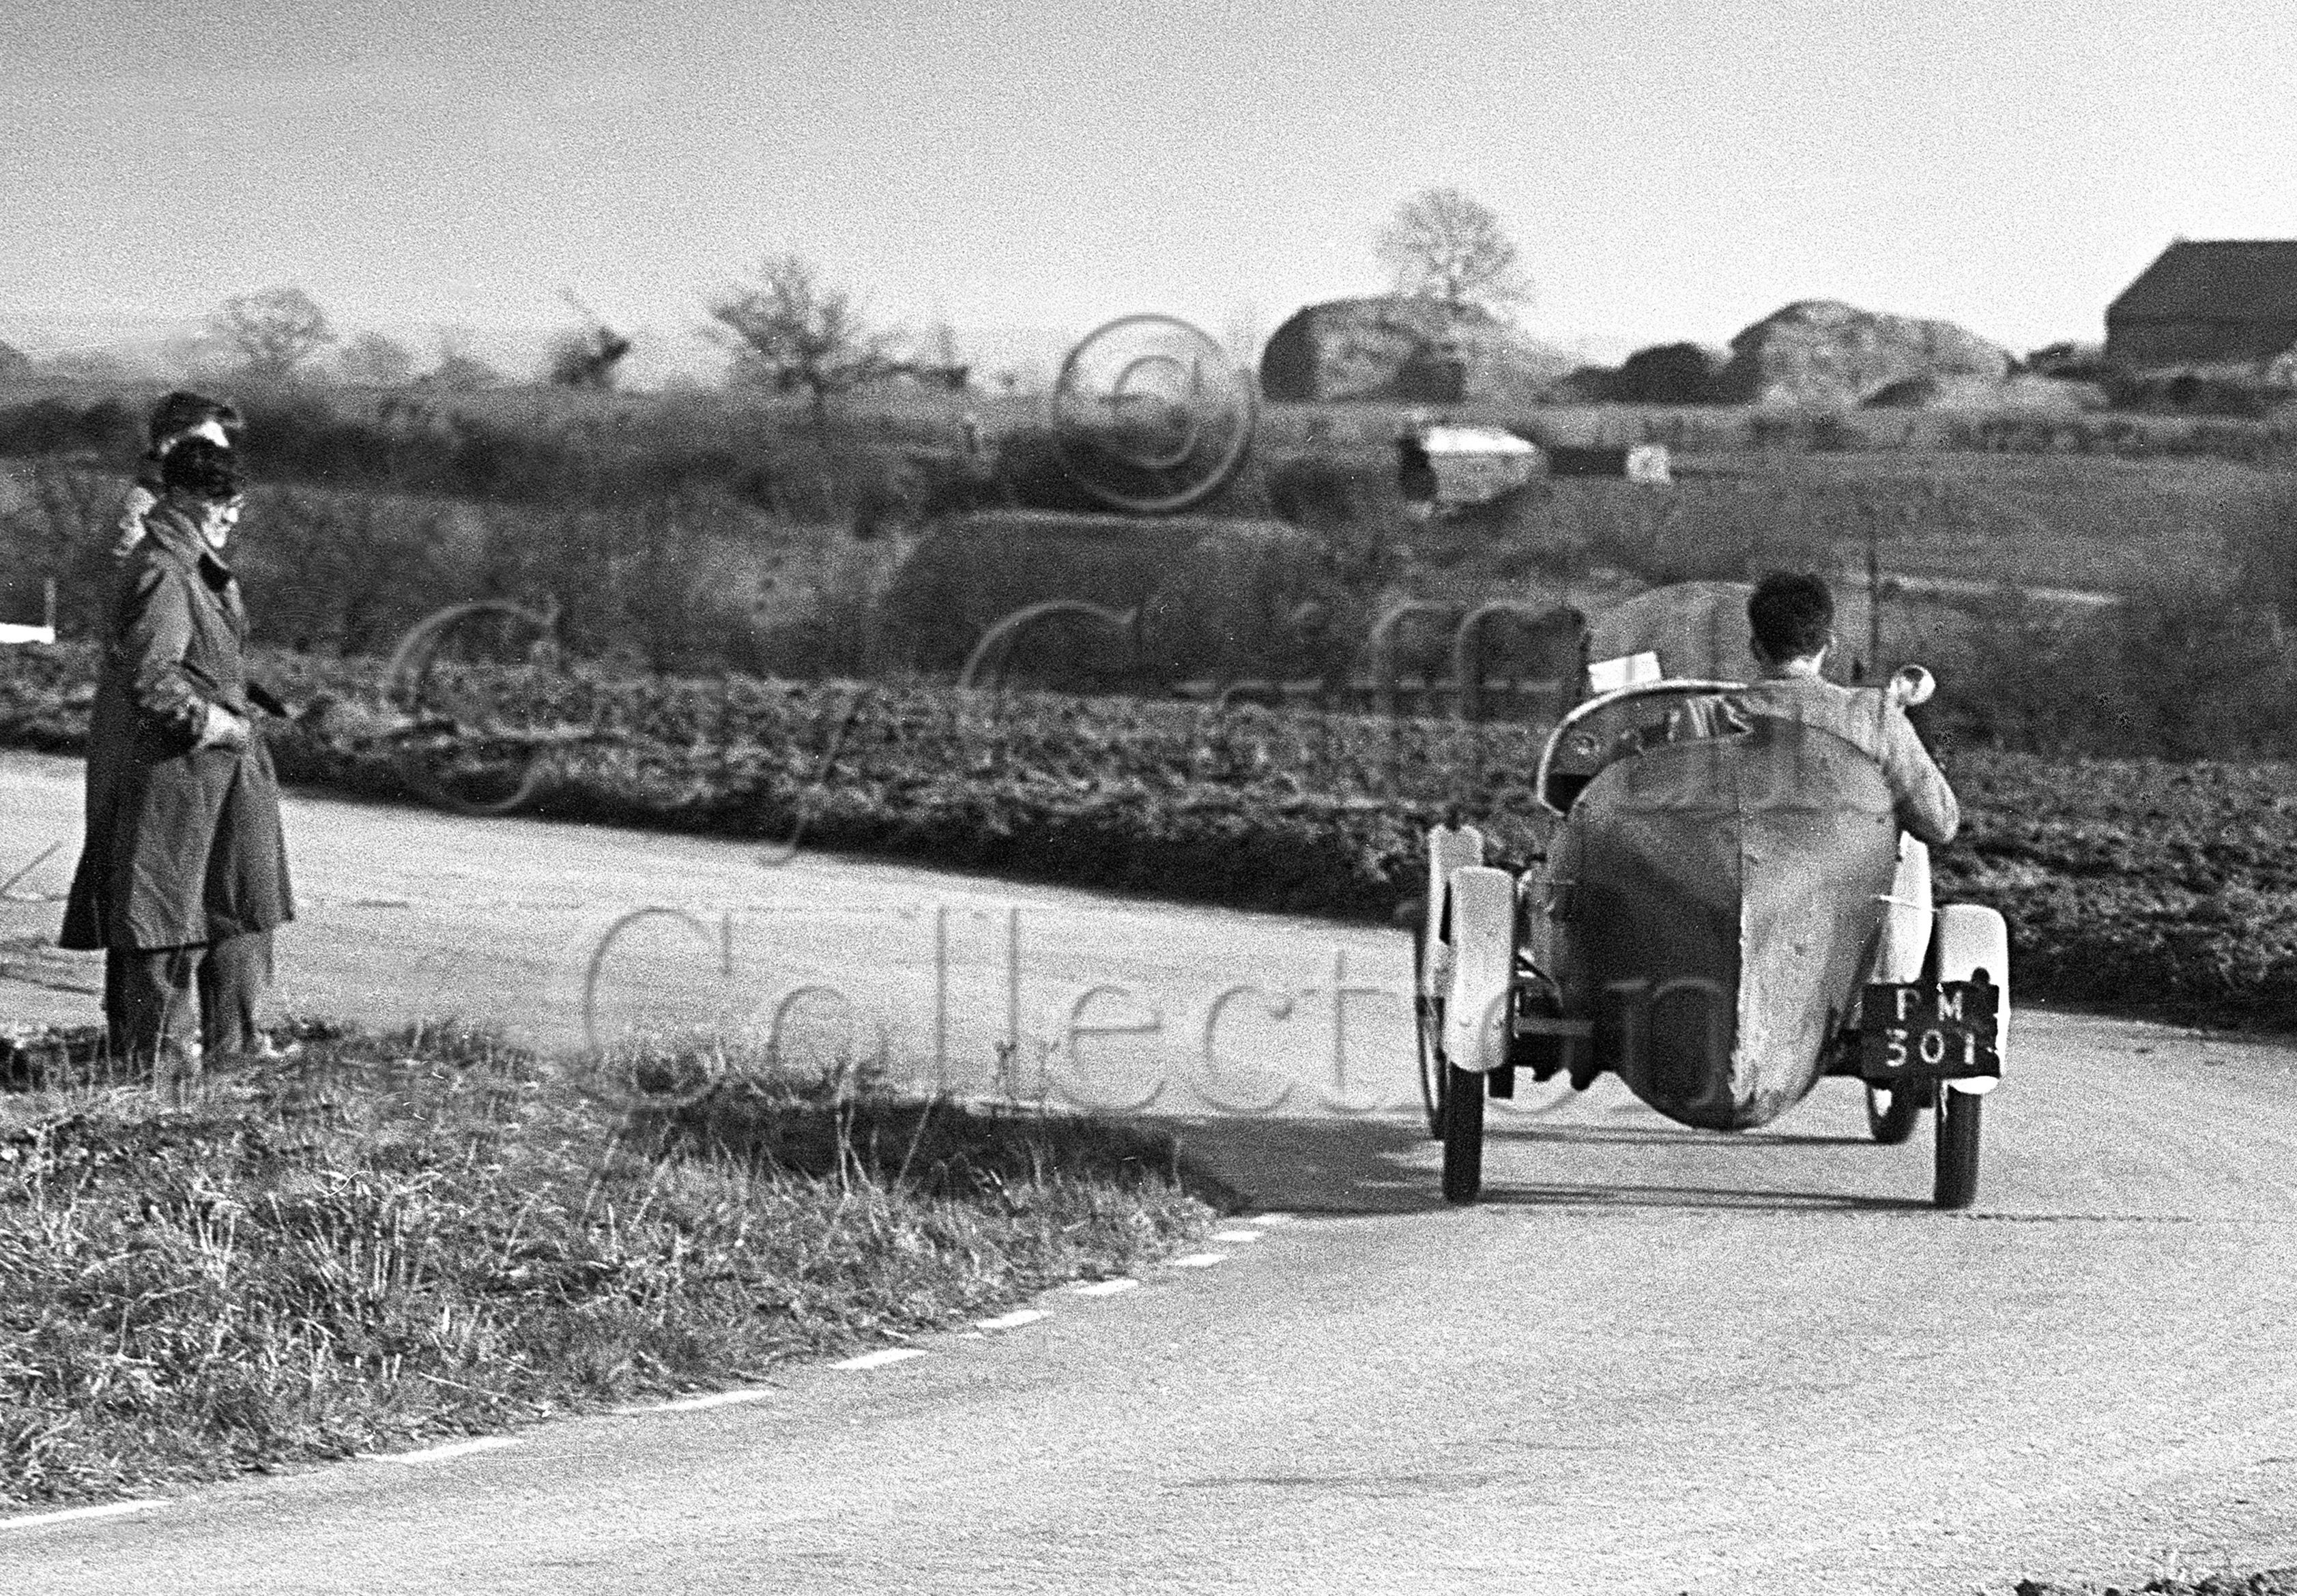 27-634–R-Benstead-Smith–Salmson–Bedwell-Hey–12-03-1950.jpg - The Guy Griffiths Collection